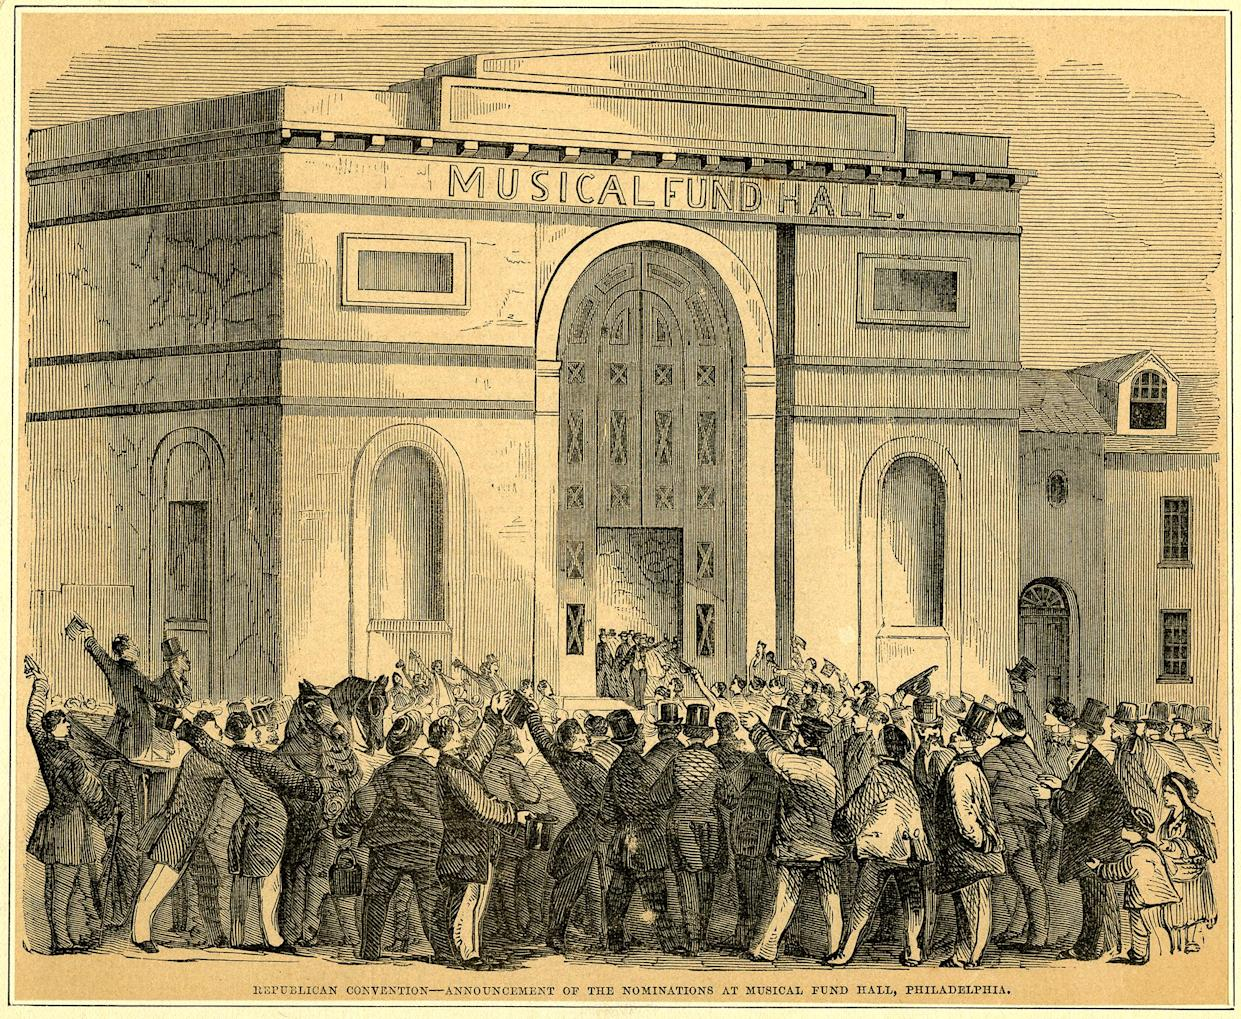 """""""Republican Convention – Announcement of the Nominations at Musical Fund Hall, Philadelphia"""" newspaper print, 1856. (Collection of the Historical Society of Pennsylvania)"""